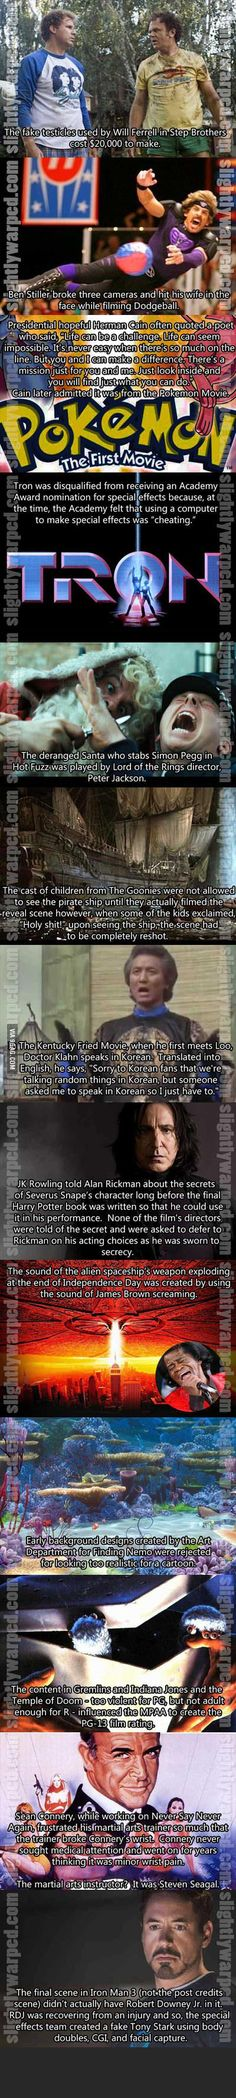 Fun, Random Movie facts. Harry Potter, Tron, Step-brothers, Dodgeball, Iron Man and more